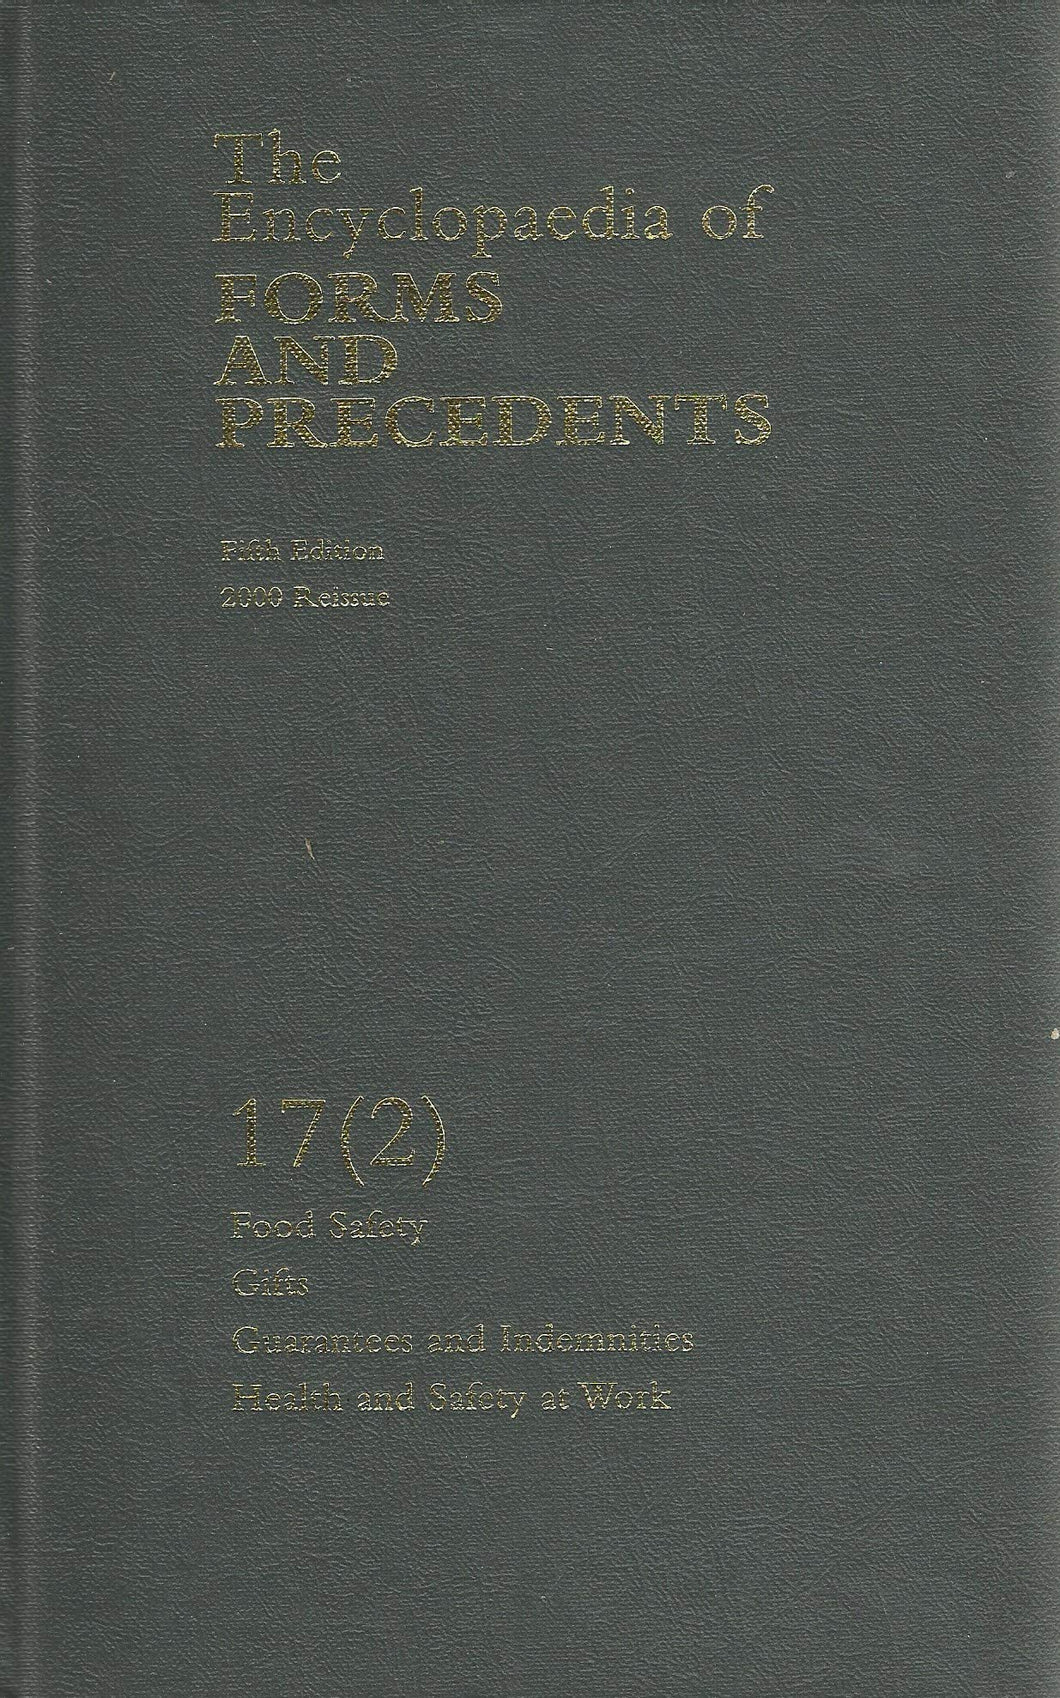 The Encyclopedia of Forms and Precendents, Volume 17 (2): Food Safety, Gifts, Guarantees and Indemnities, Health and Safety at Work